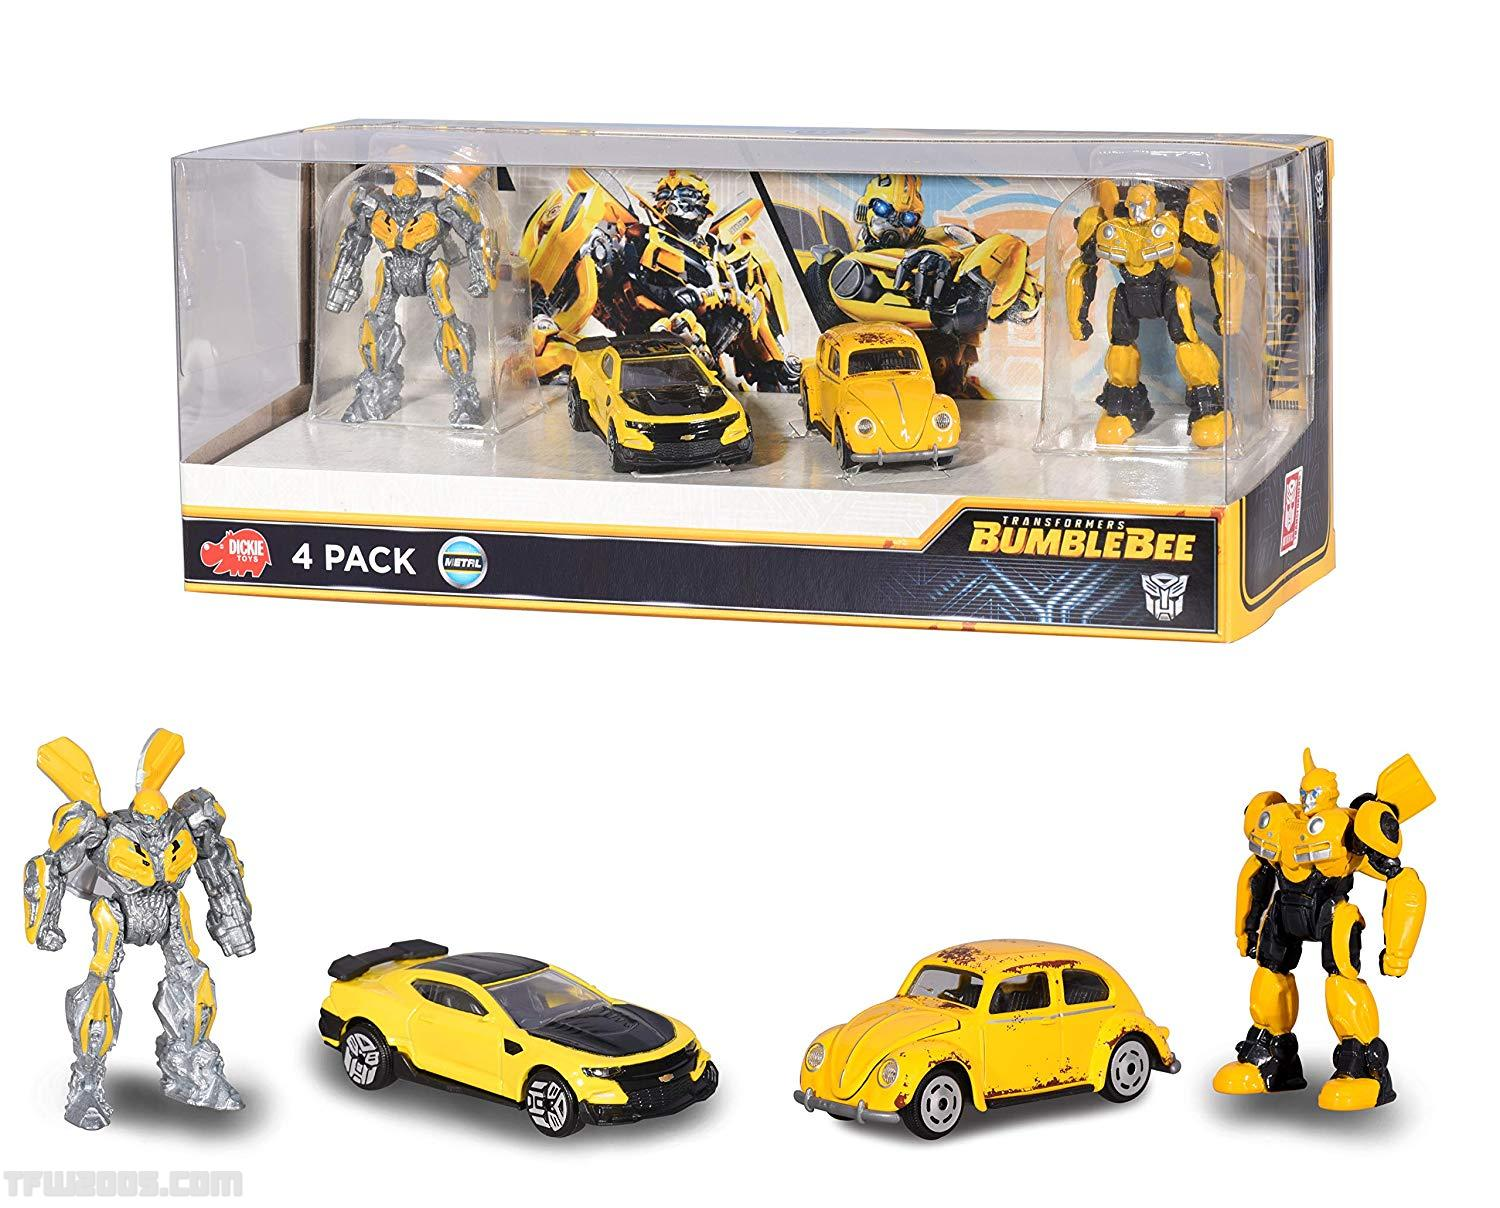 Simba Dickie Transformers Bumblebee Movie Licensed Rc Cars Robots Die Cast Vehicles And